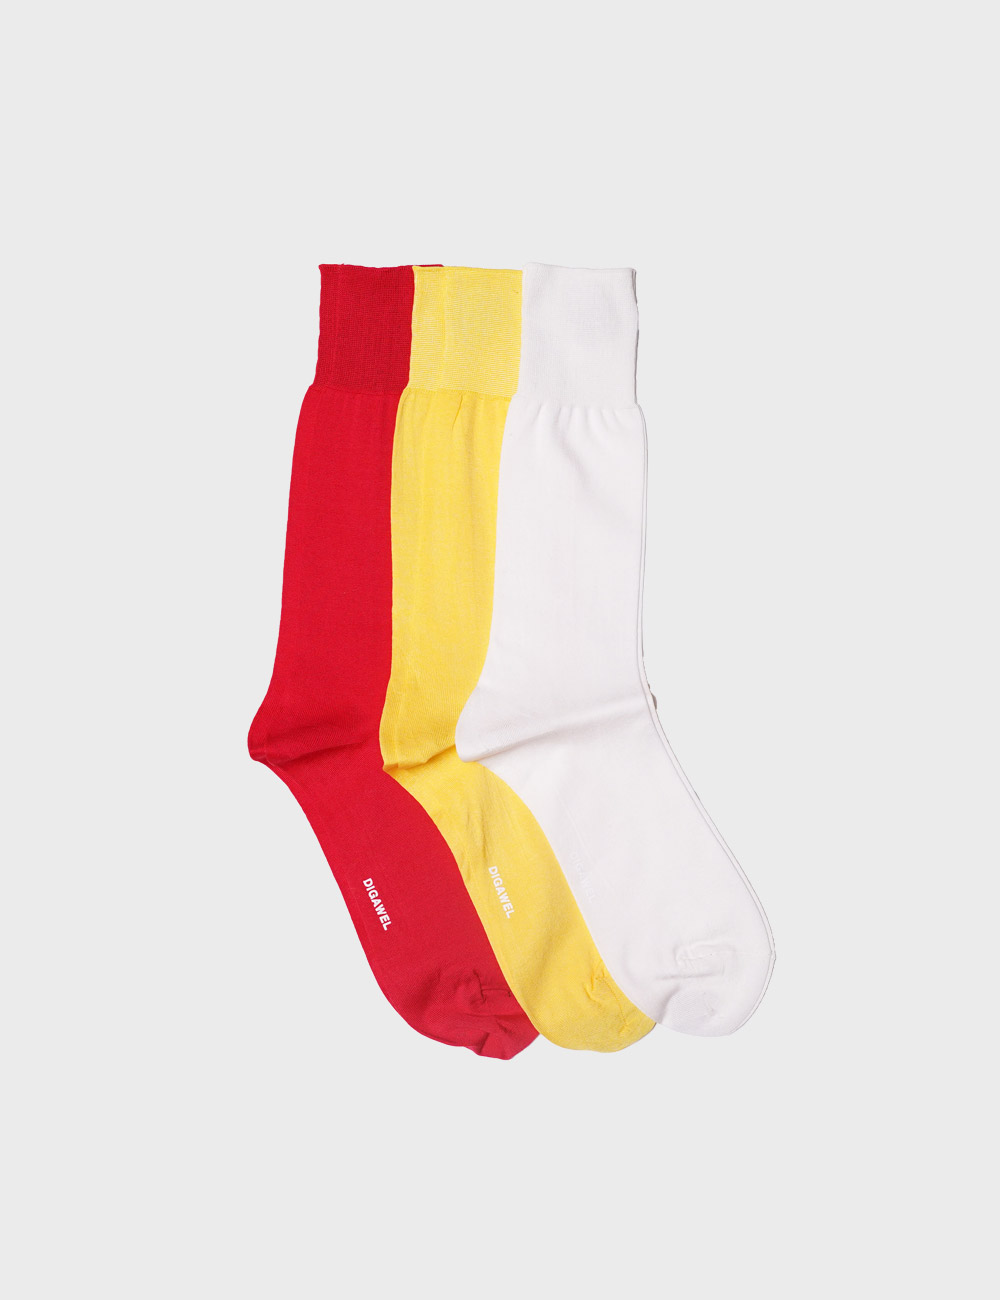 DIGAWEL : HIGH GUAGE SOCKS